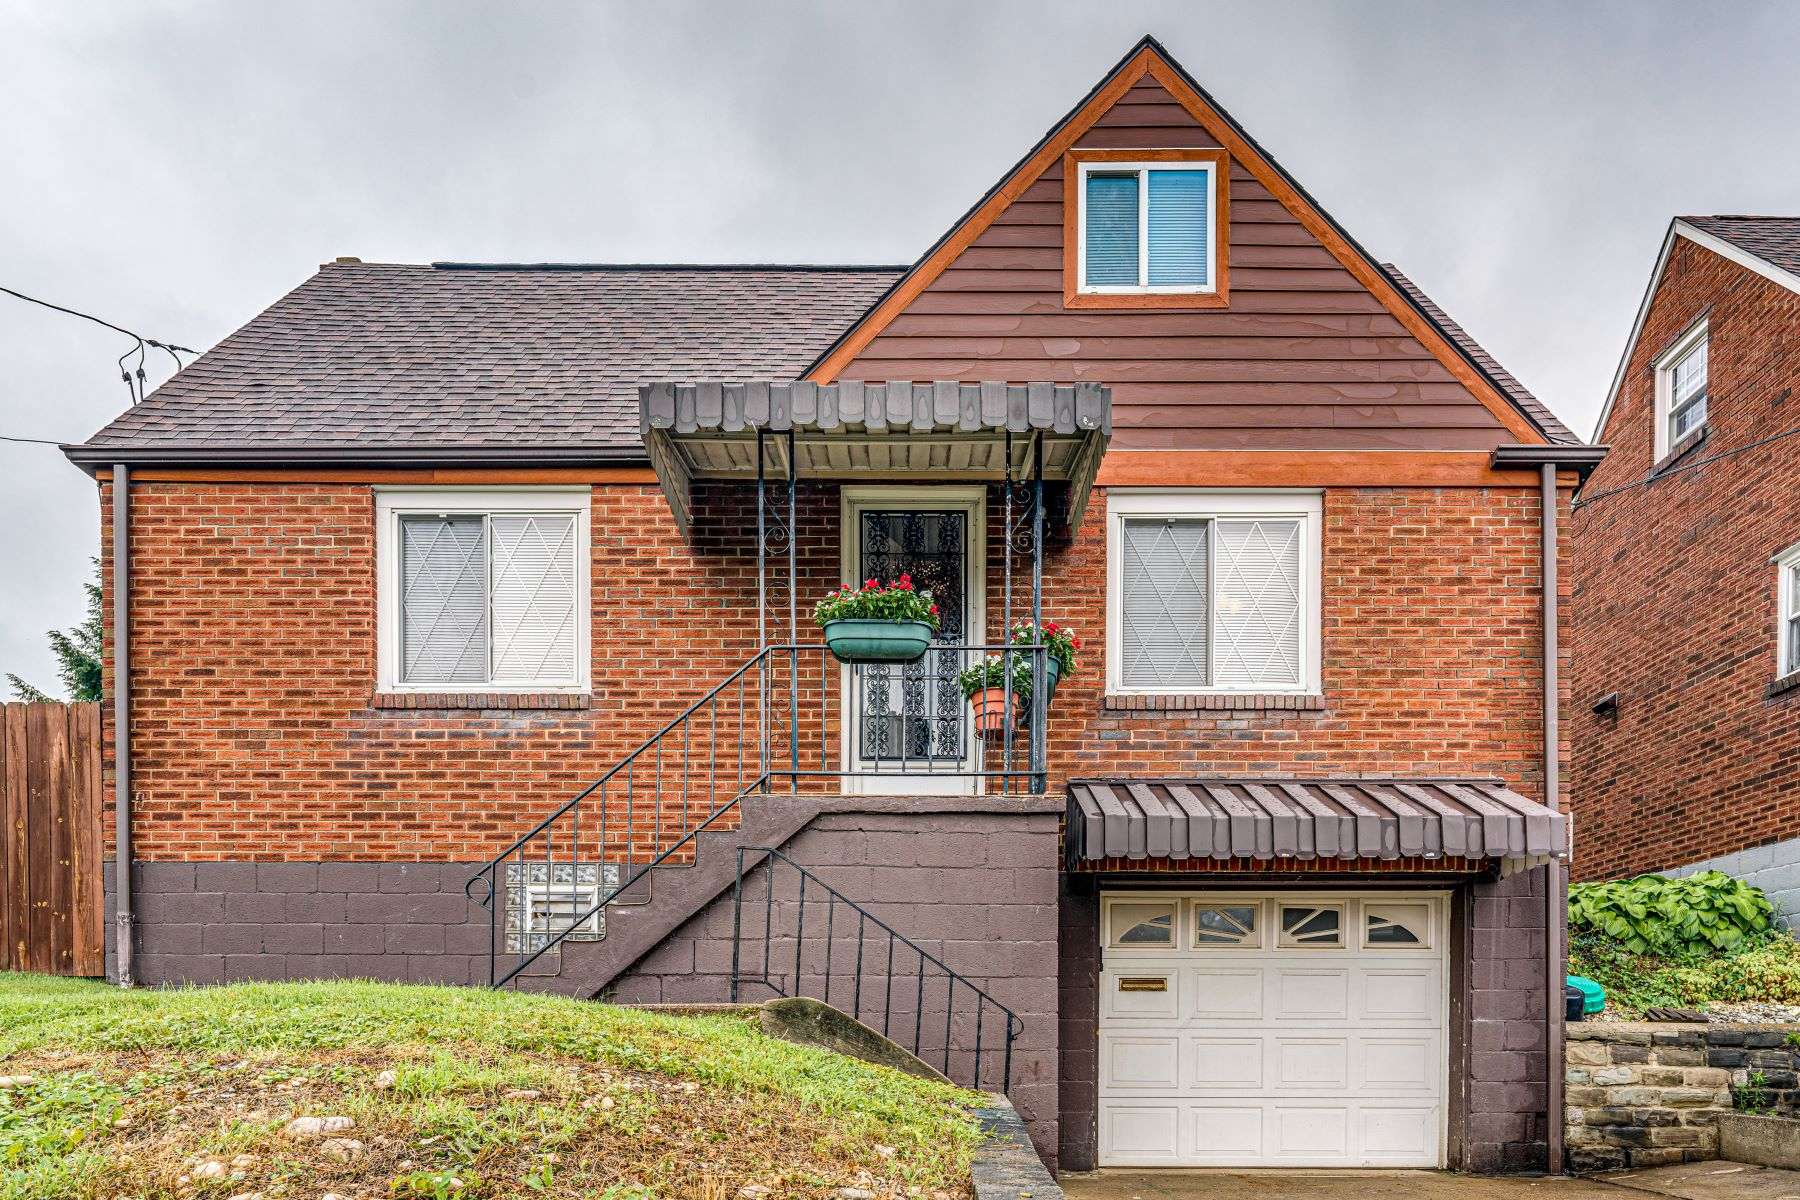 Single Family Homes for Sale at 53 May Avenue McKees Rocks, Pennsylvania 15136 United States